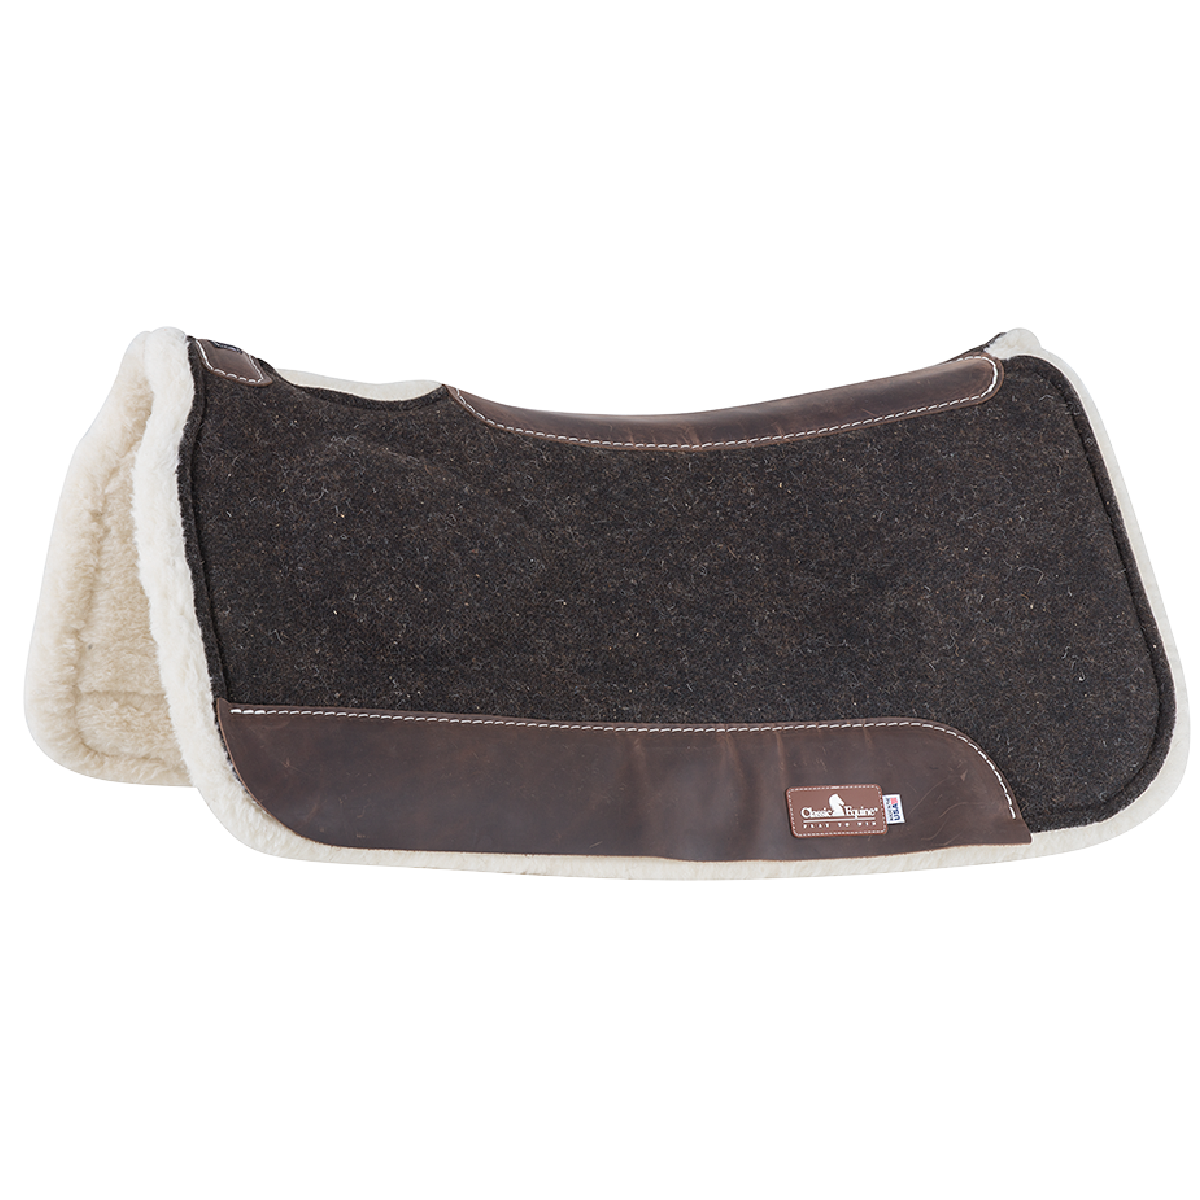 Classic BioFit Correction Pad by Classic Equine